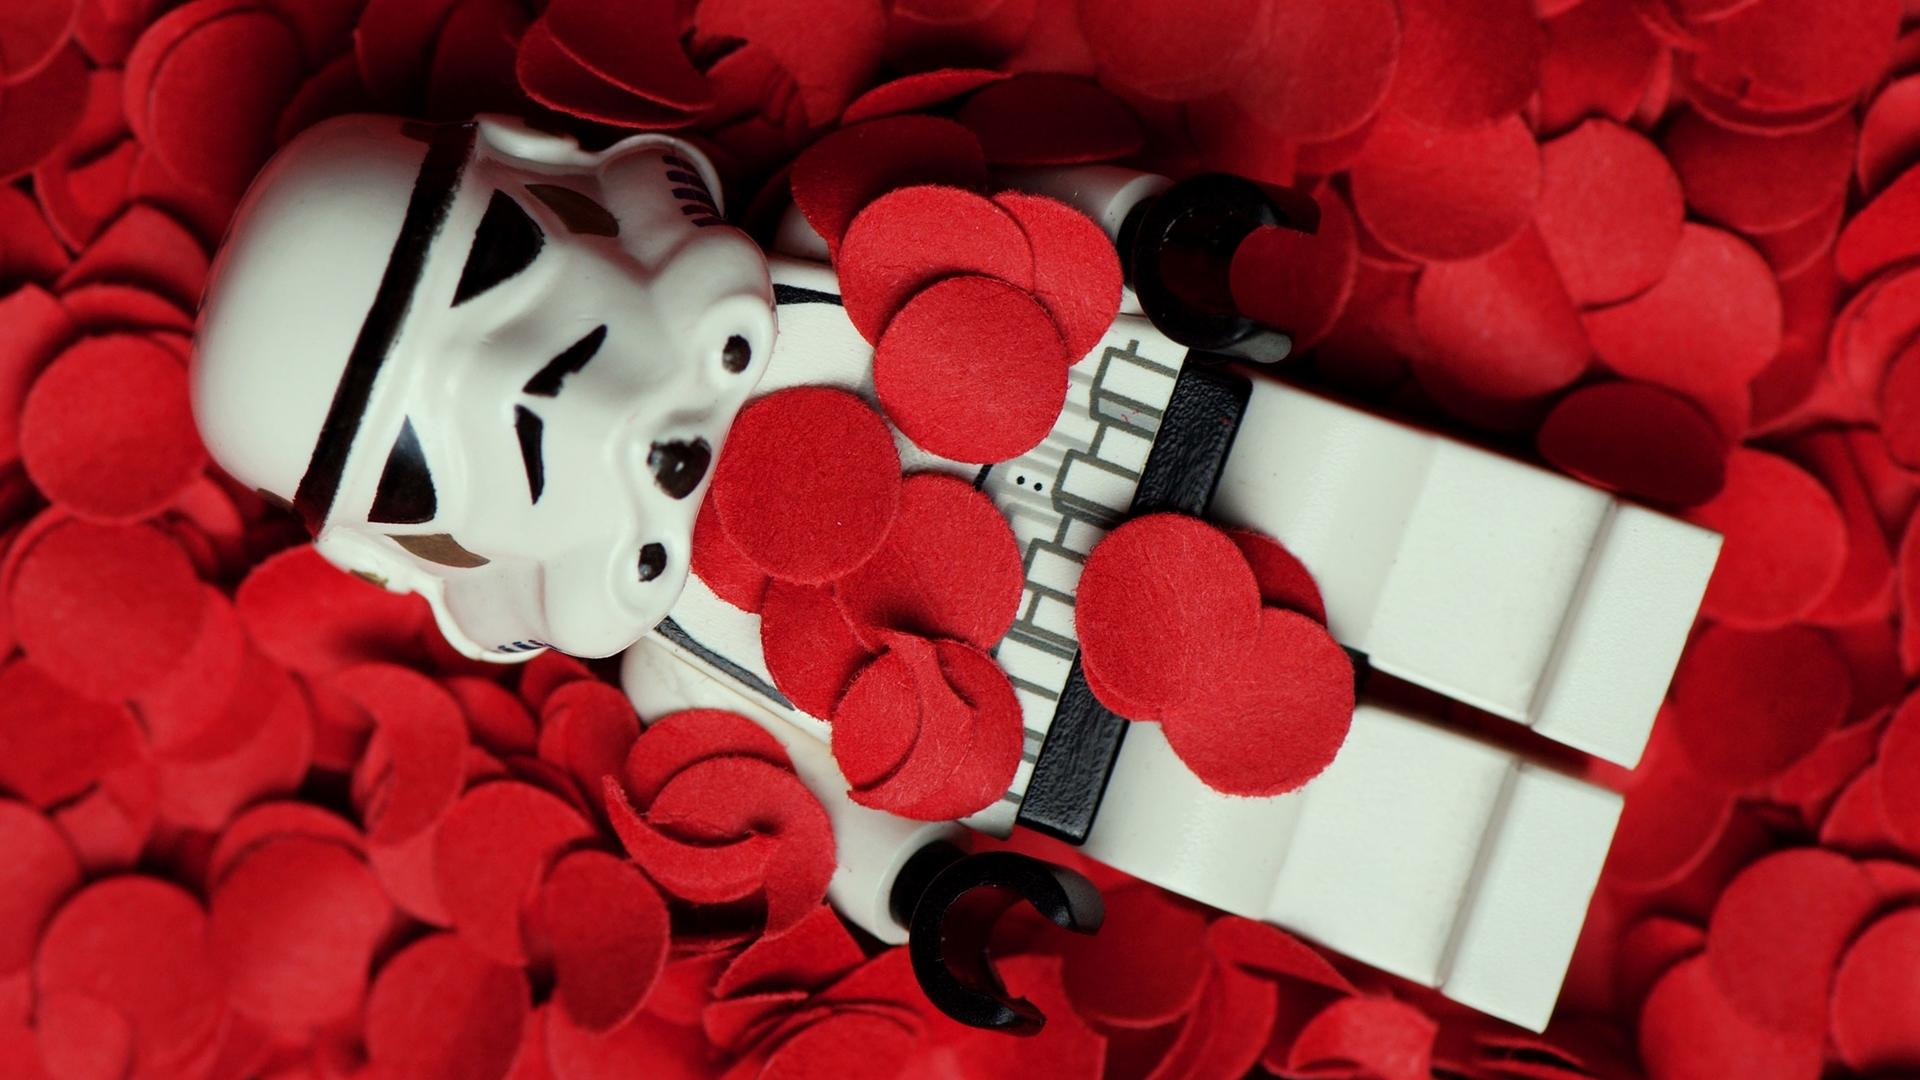 Cute Roses Wallpapers Download 25 Excellent Hd Lego Wallpapers